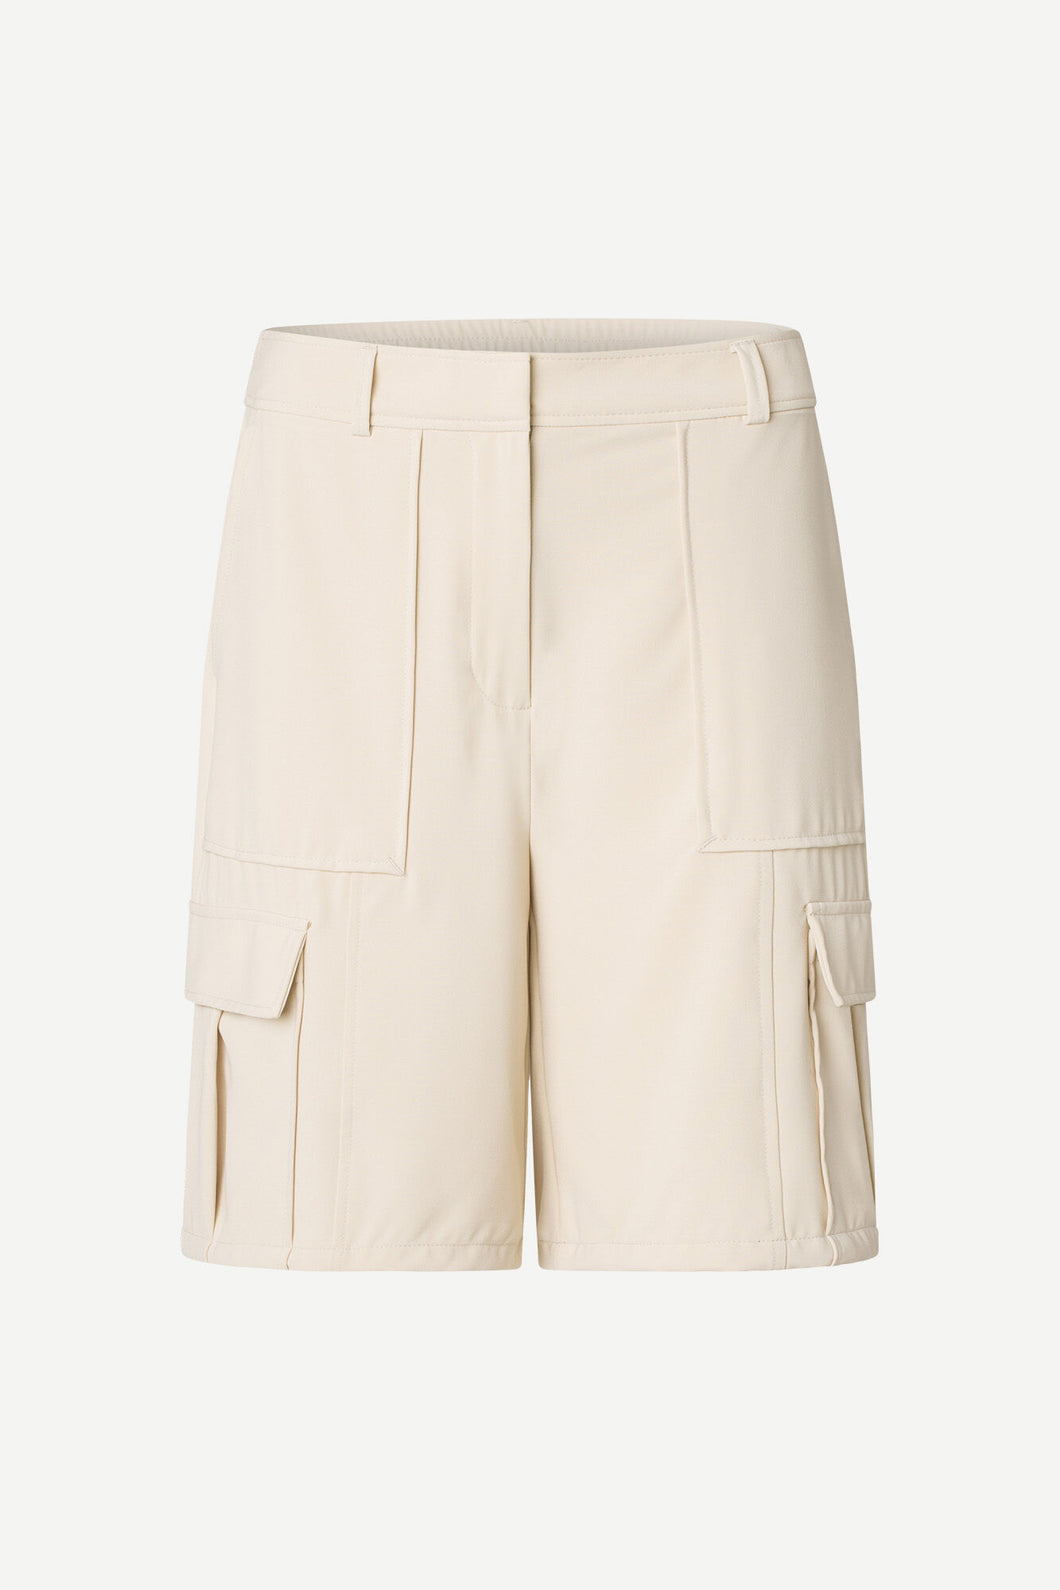 Citrine shorts 10654 quicksand